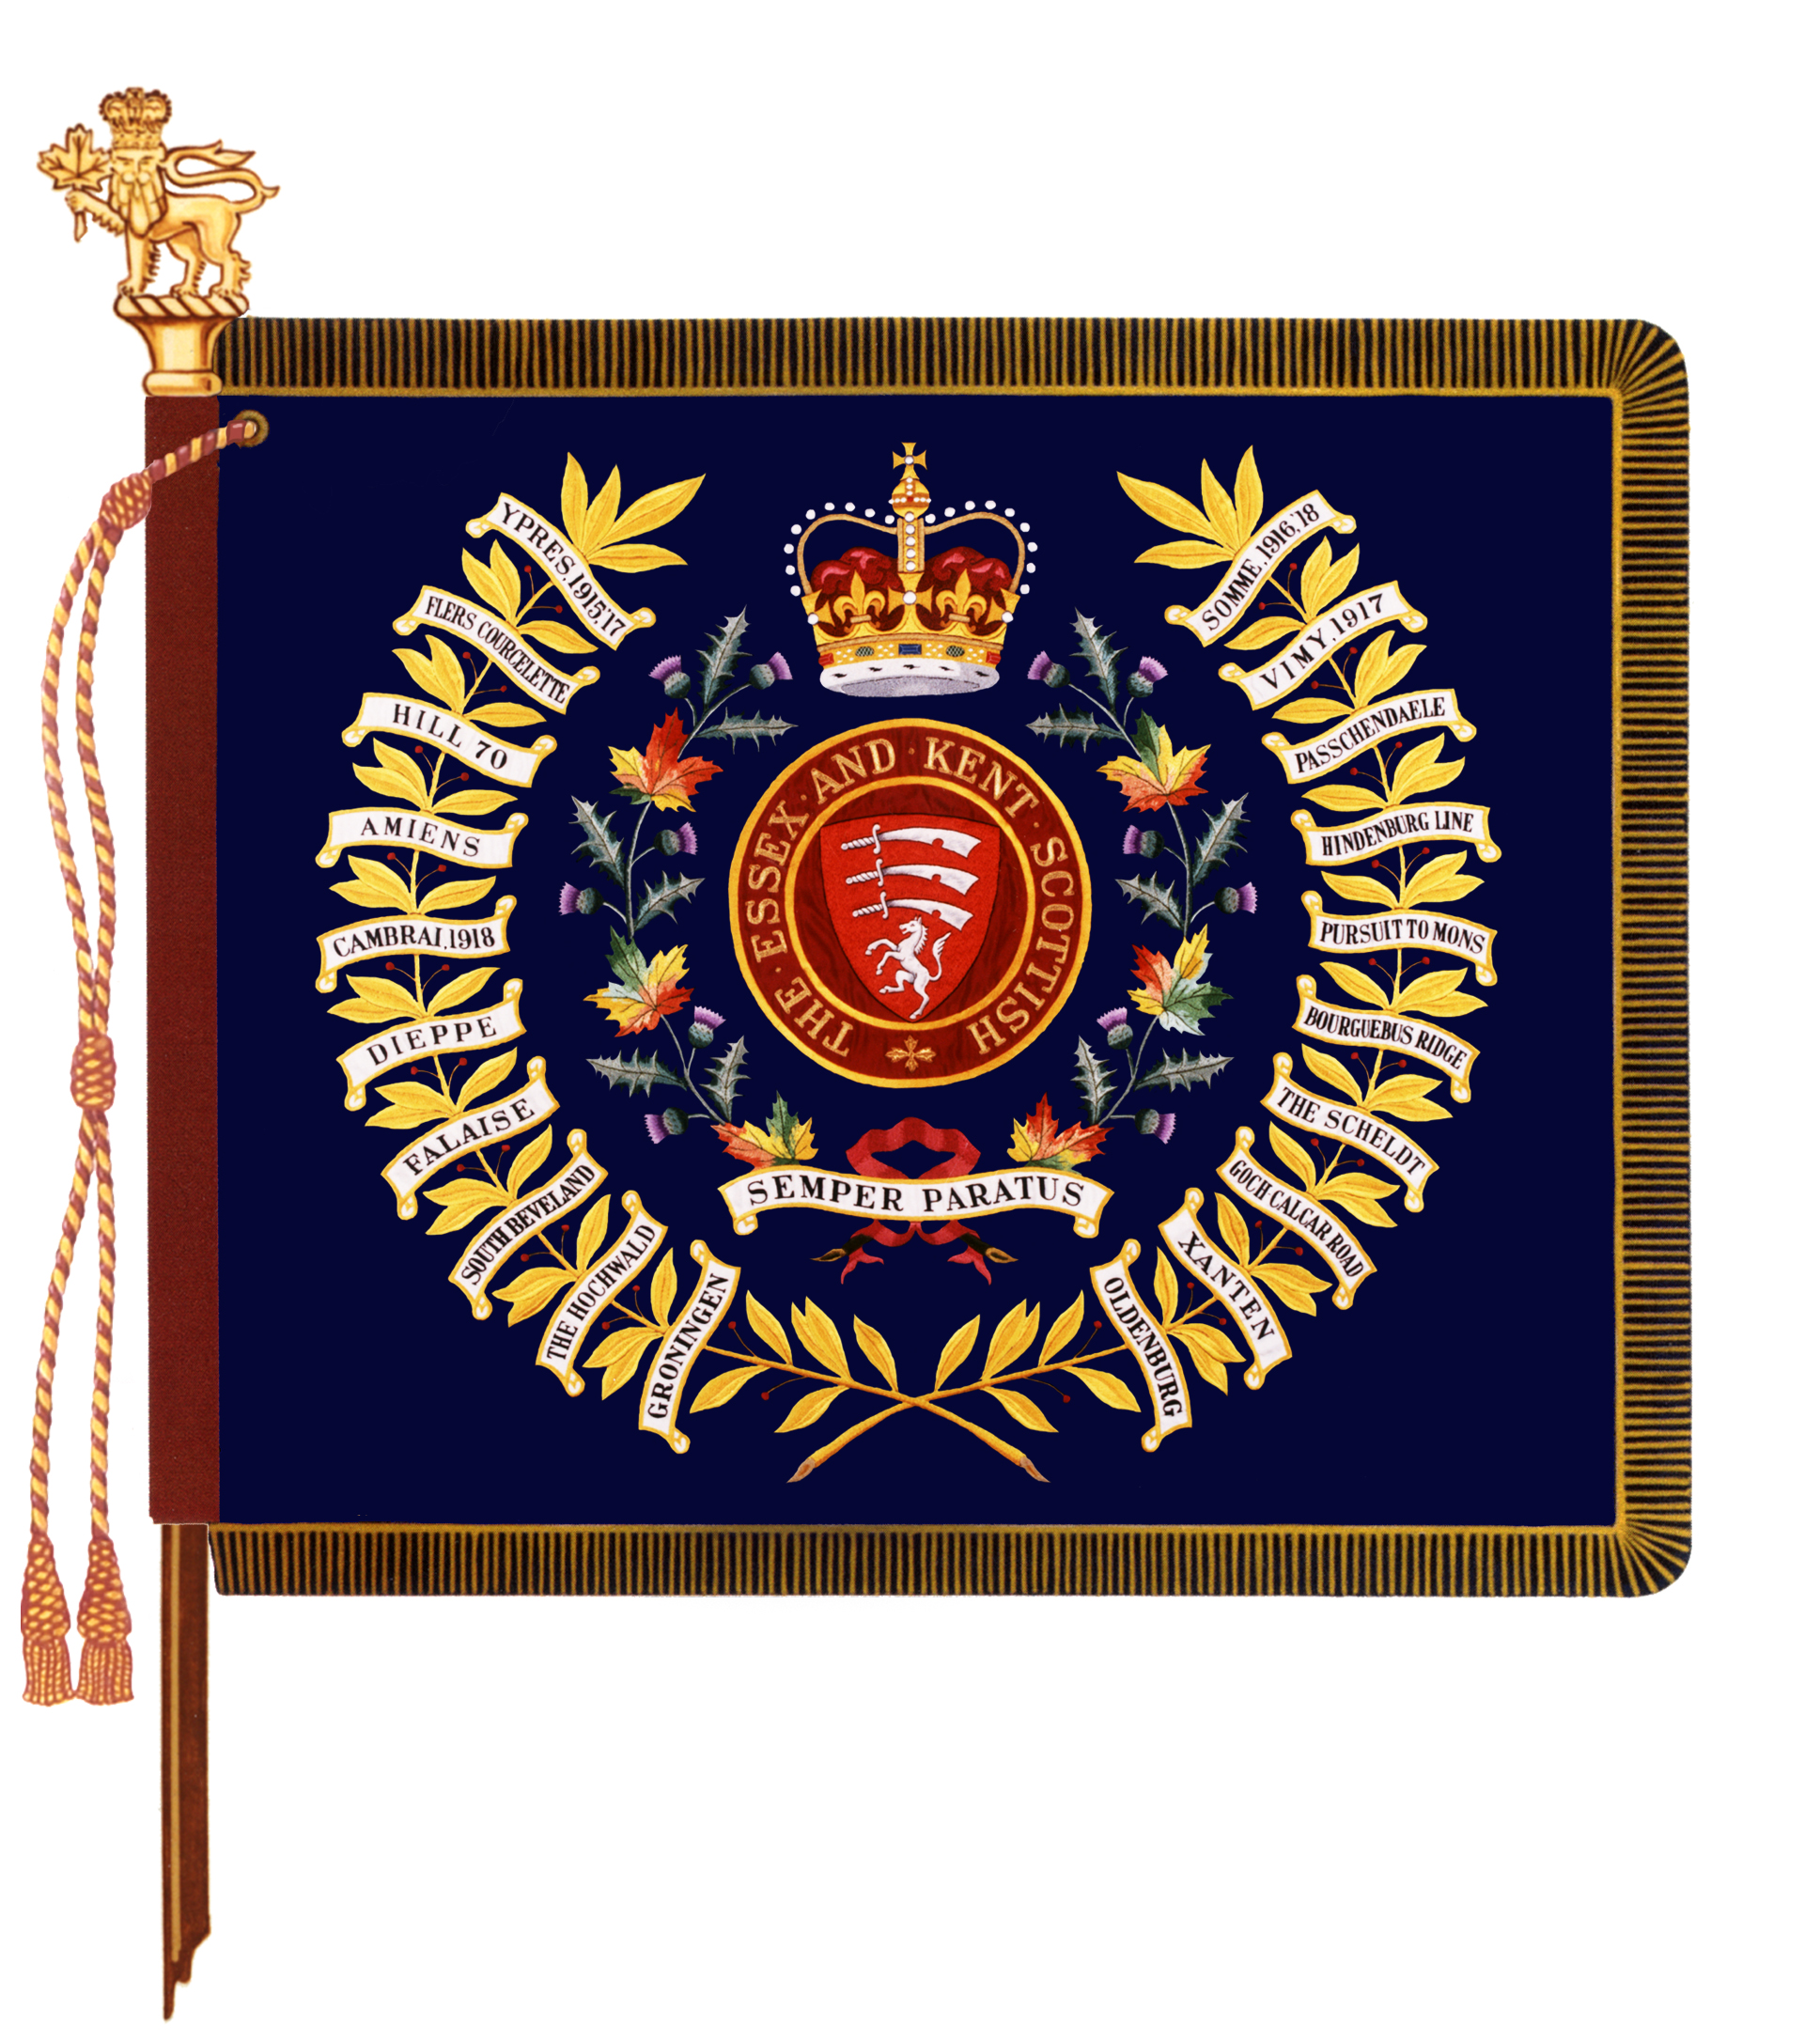 The Essex & Kent Scottish Regiment